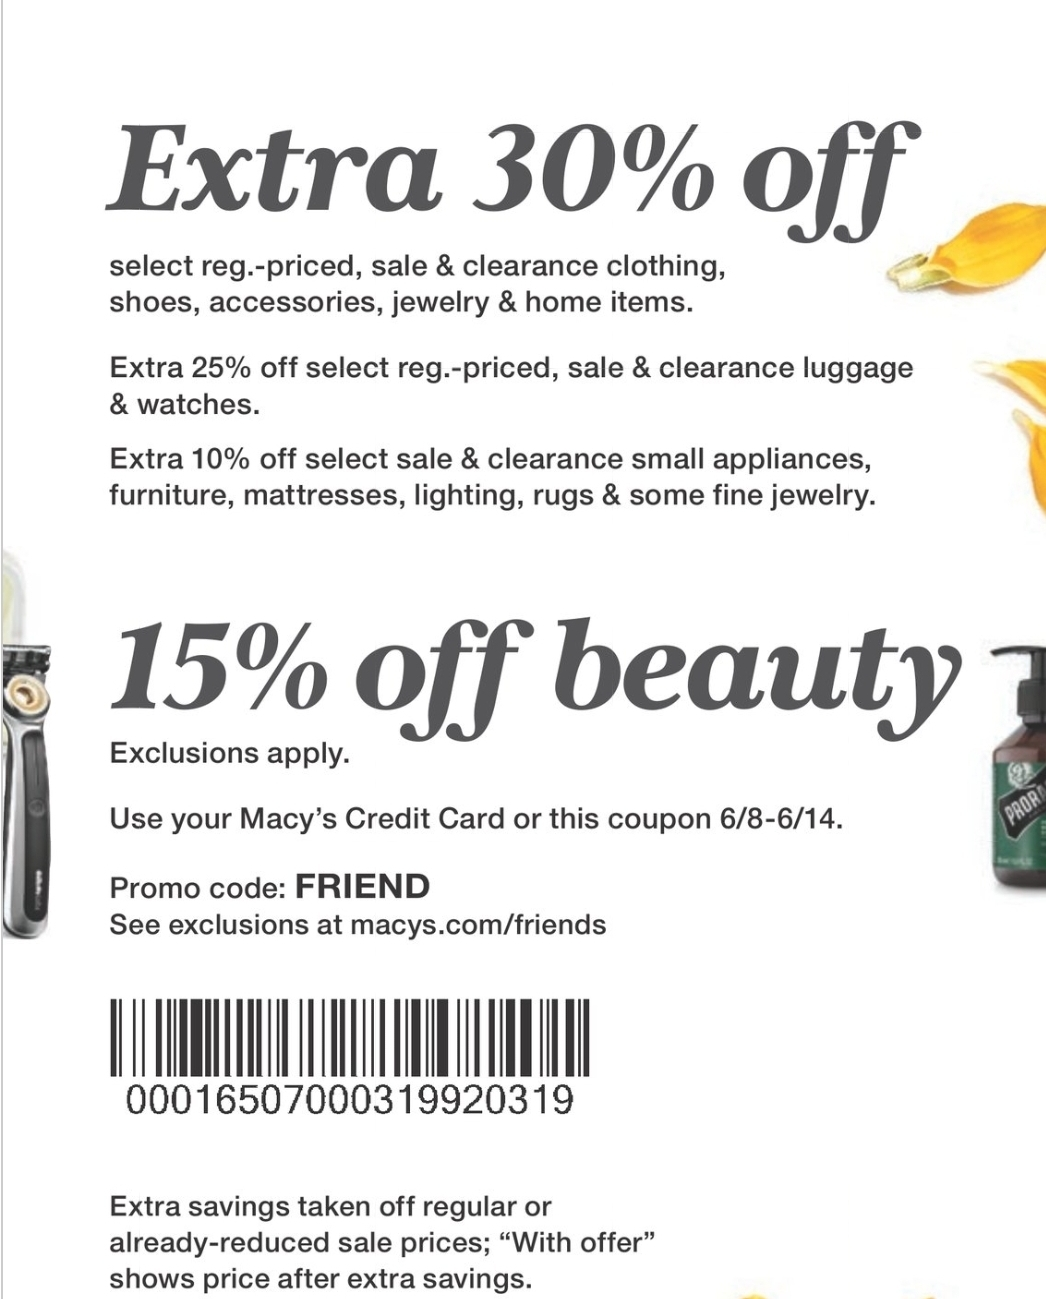 Macy's Coupon: Extra 30% Off Friends & Family Event + 15% Off Beauty